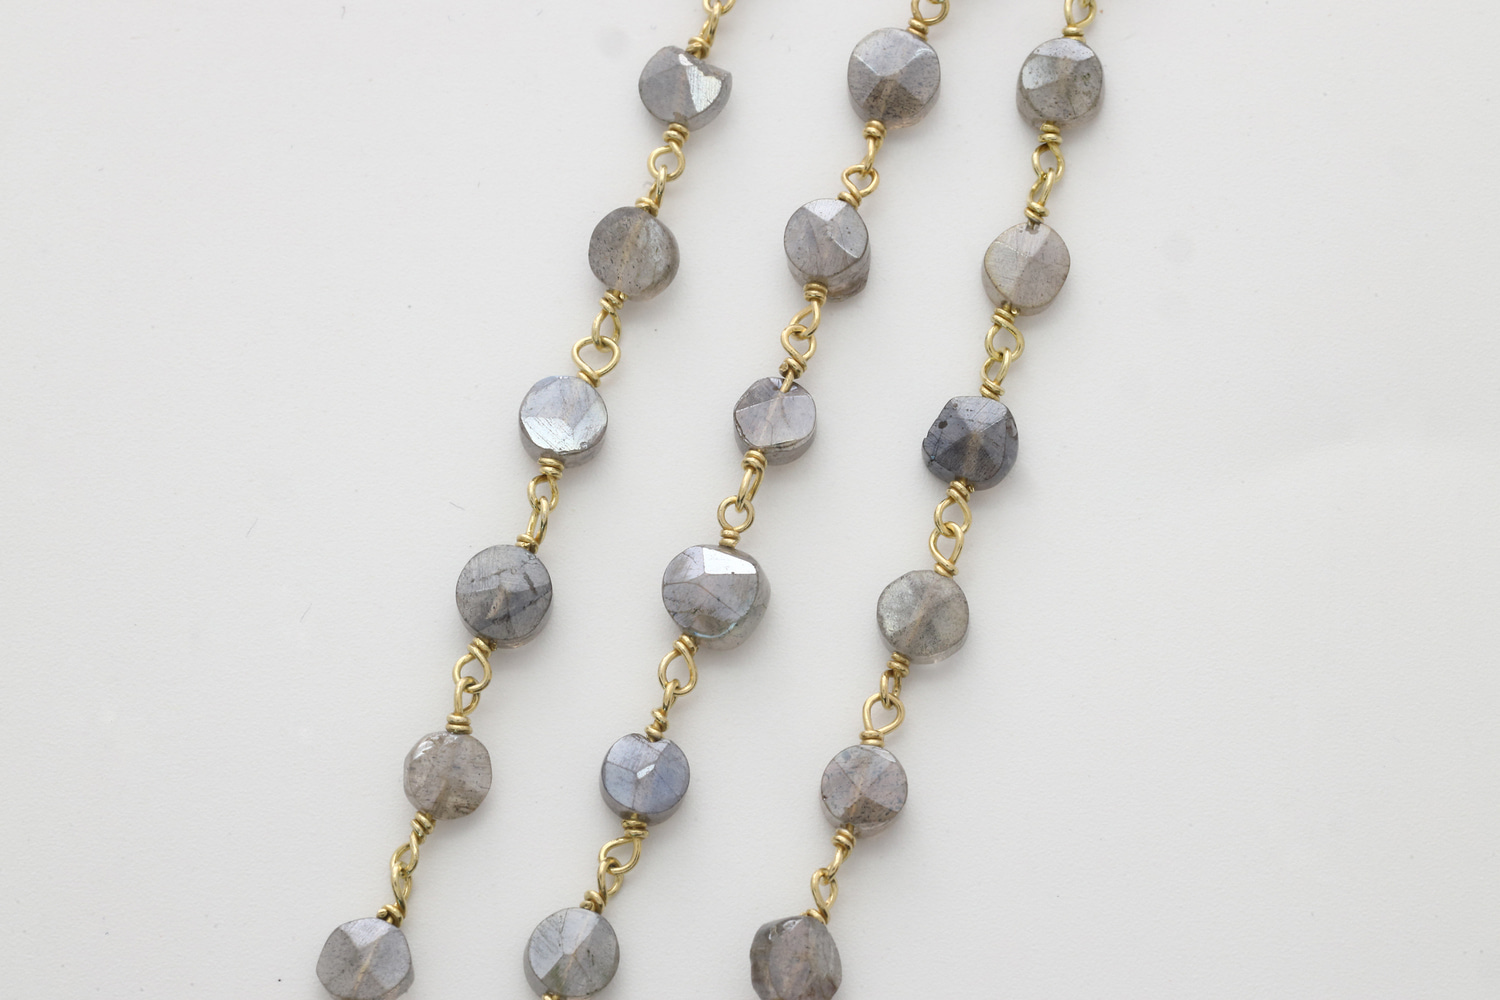 [CJ54-08] Gemstone chain (Mystic Labradorite), Gold plated 925 silver, Gemstones, Nickel free, Jewelry making supplies, 1m